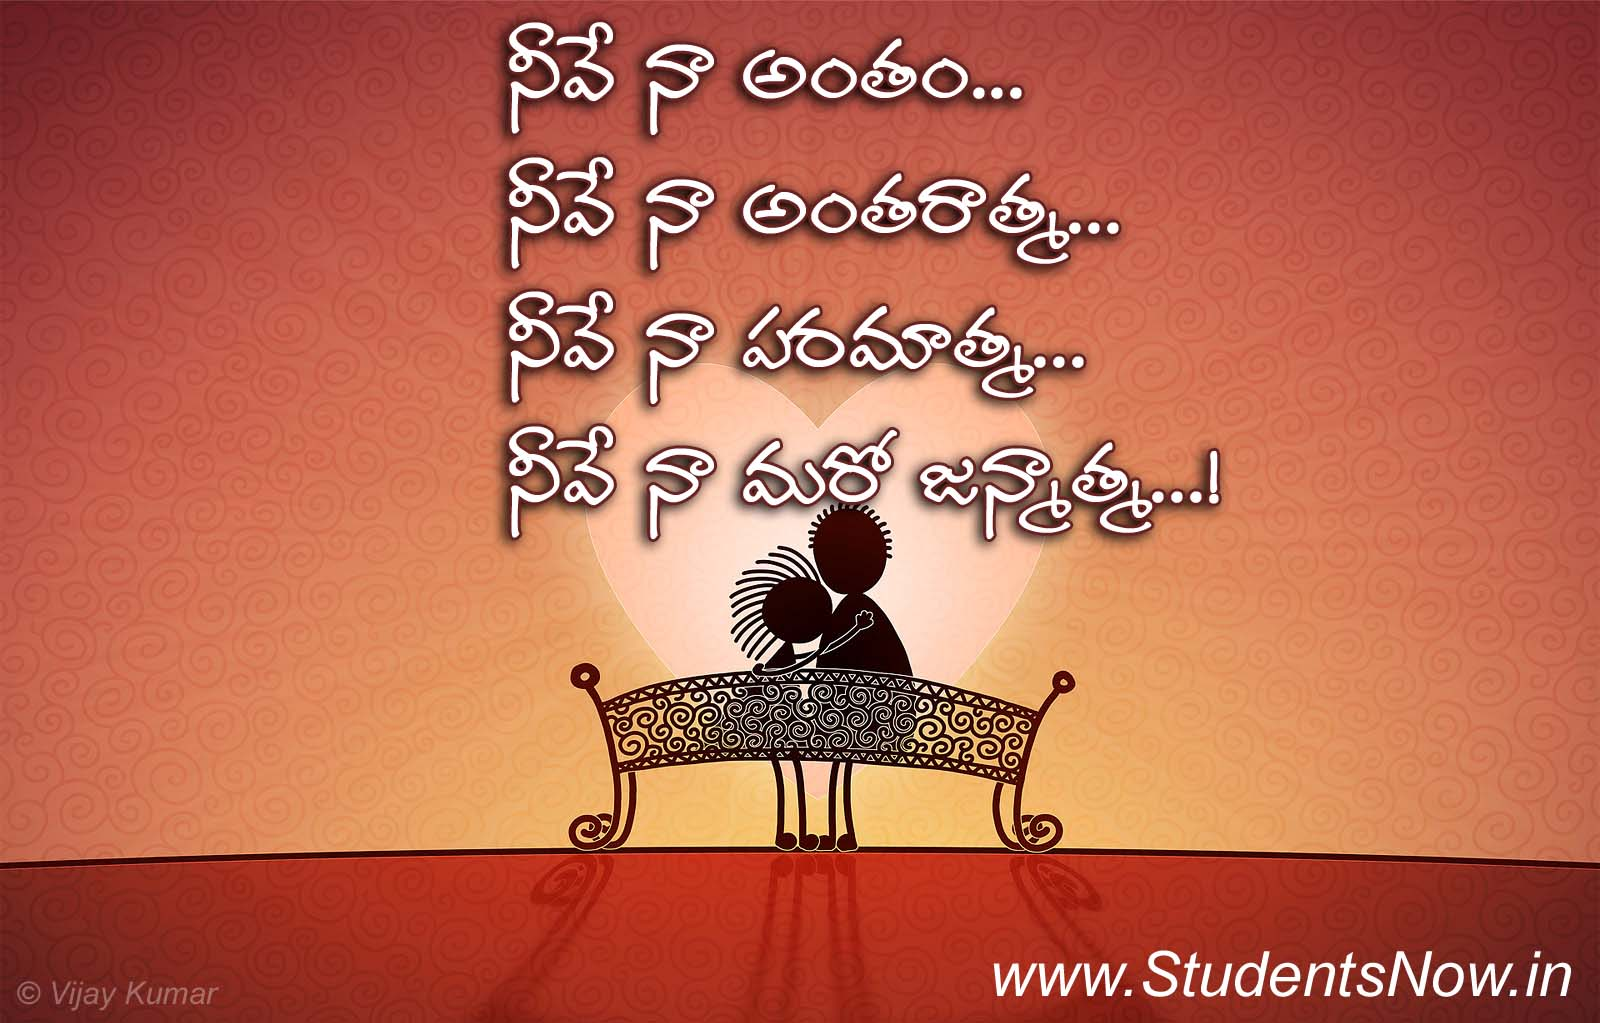 Telugu Quotes Wallpapers